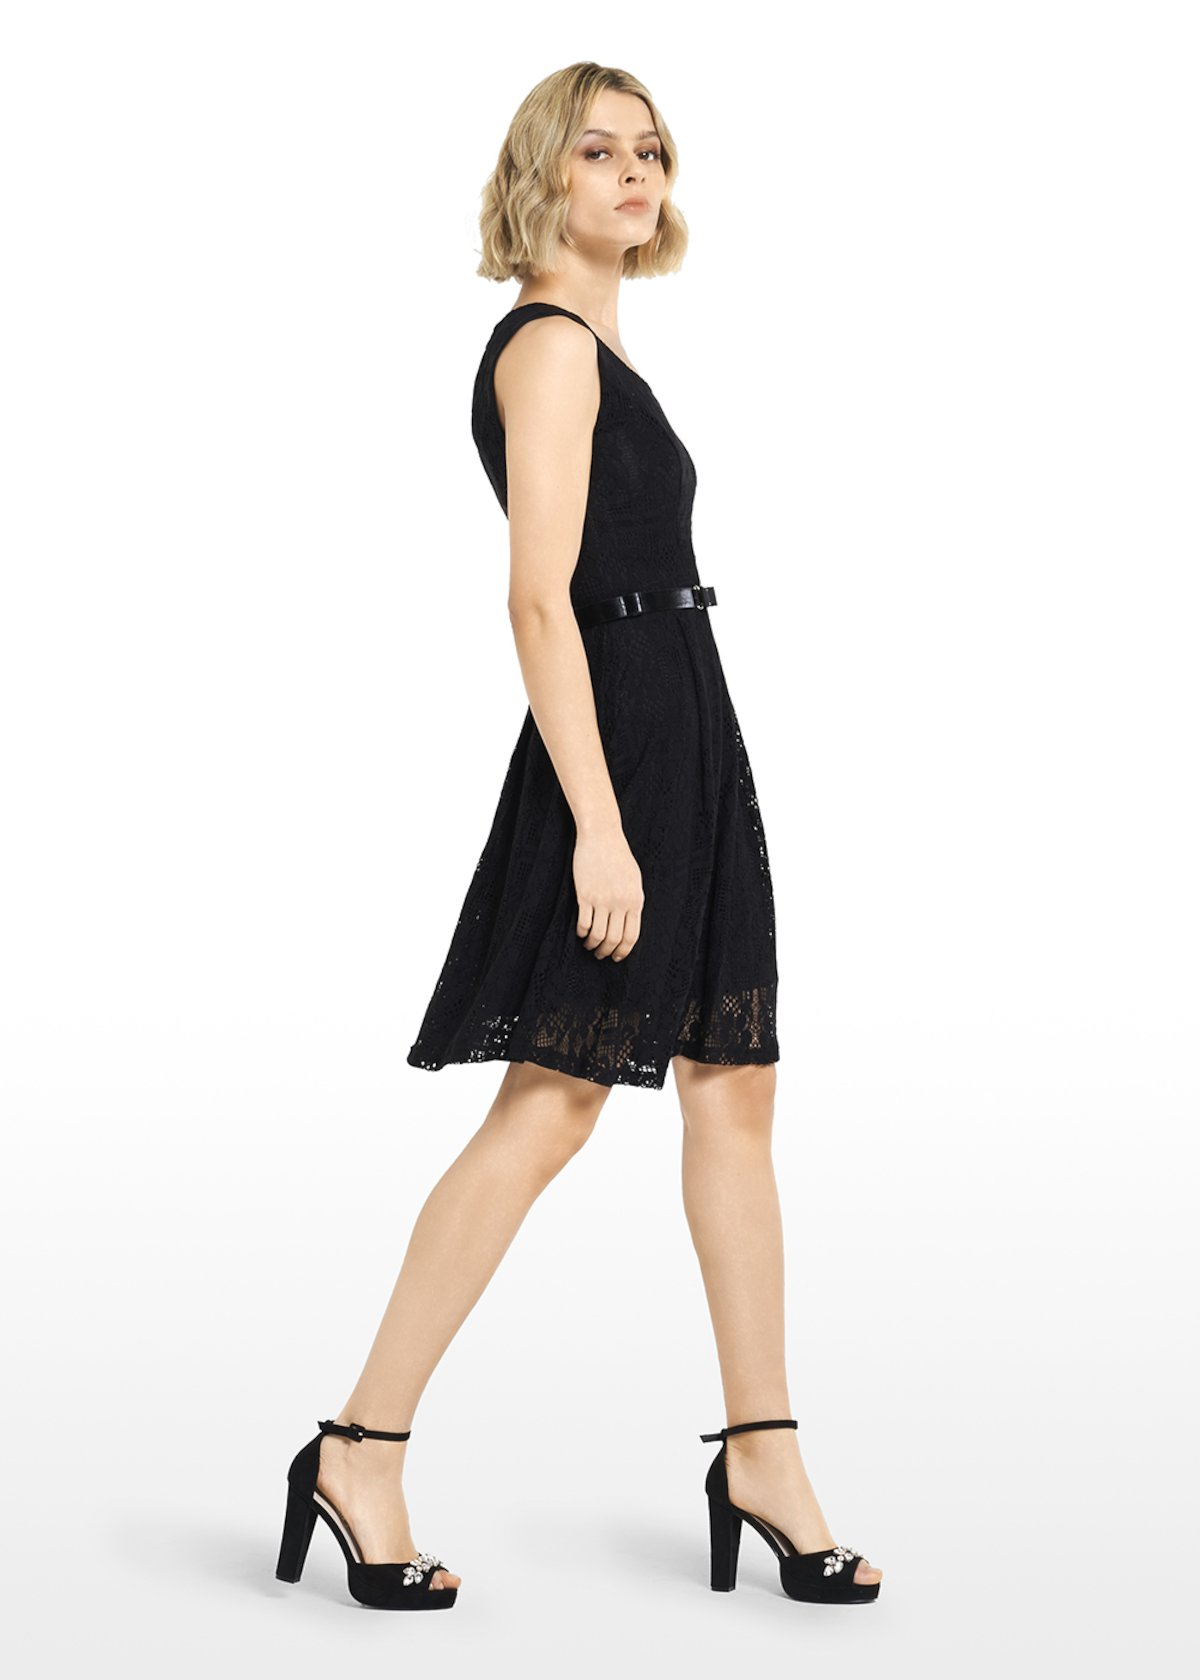 Lace Adil dress with full skirt - Black - Woman - Category image